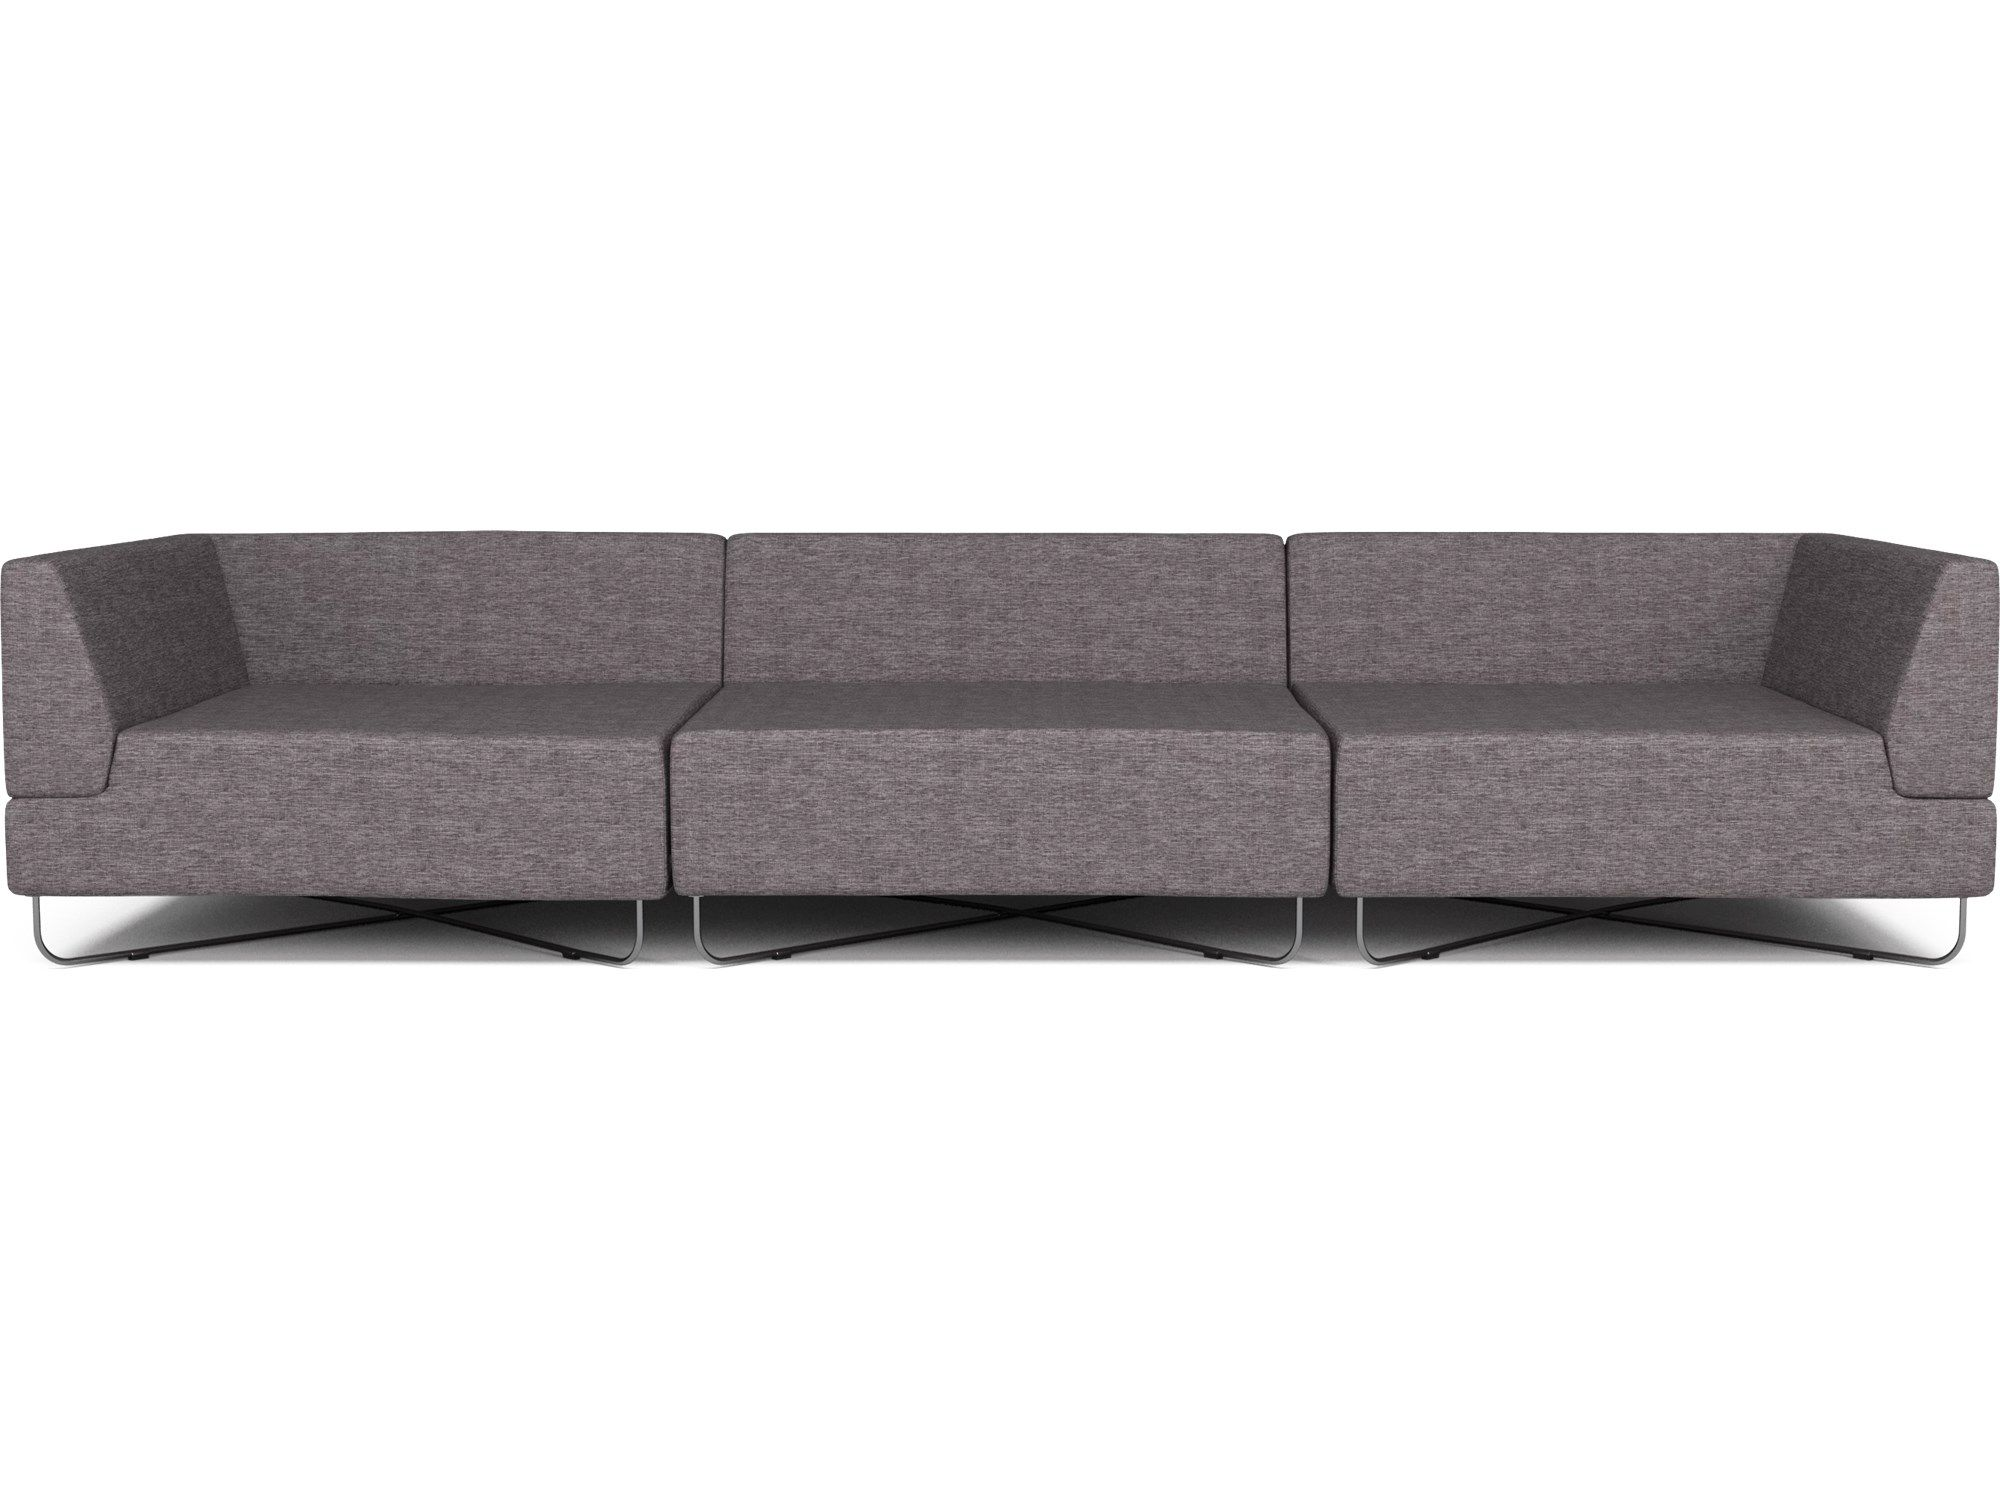 Nice Sofas   Elegant And Comfy Designer Sofas With Stylish Details Nice Design